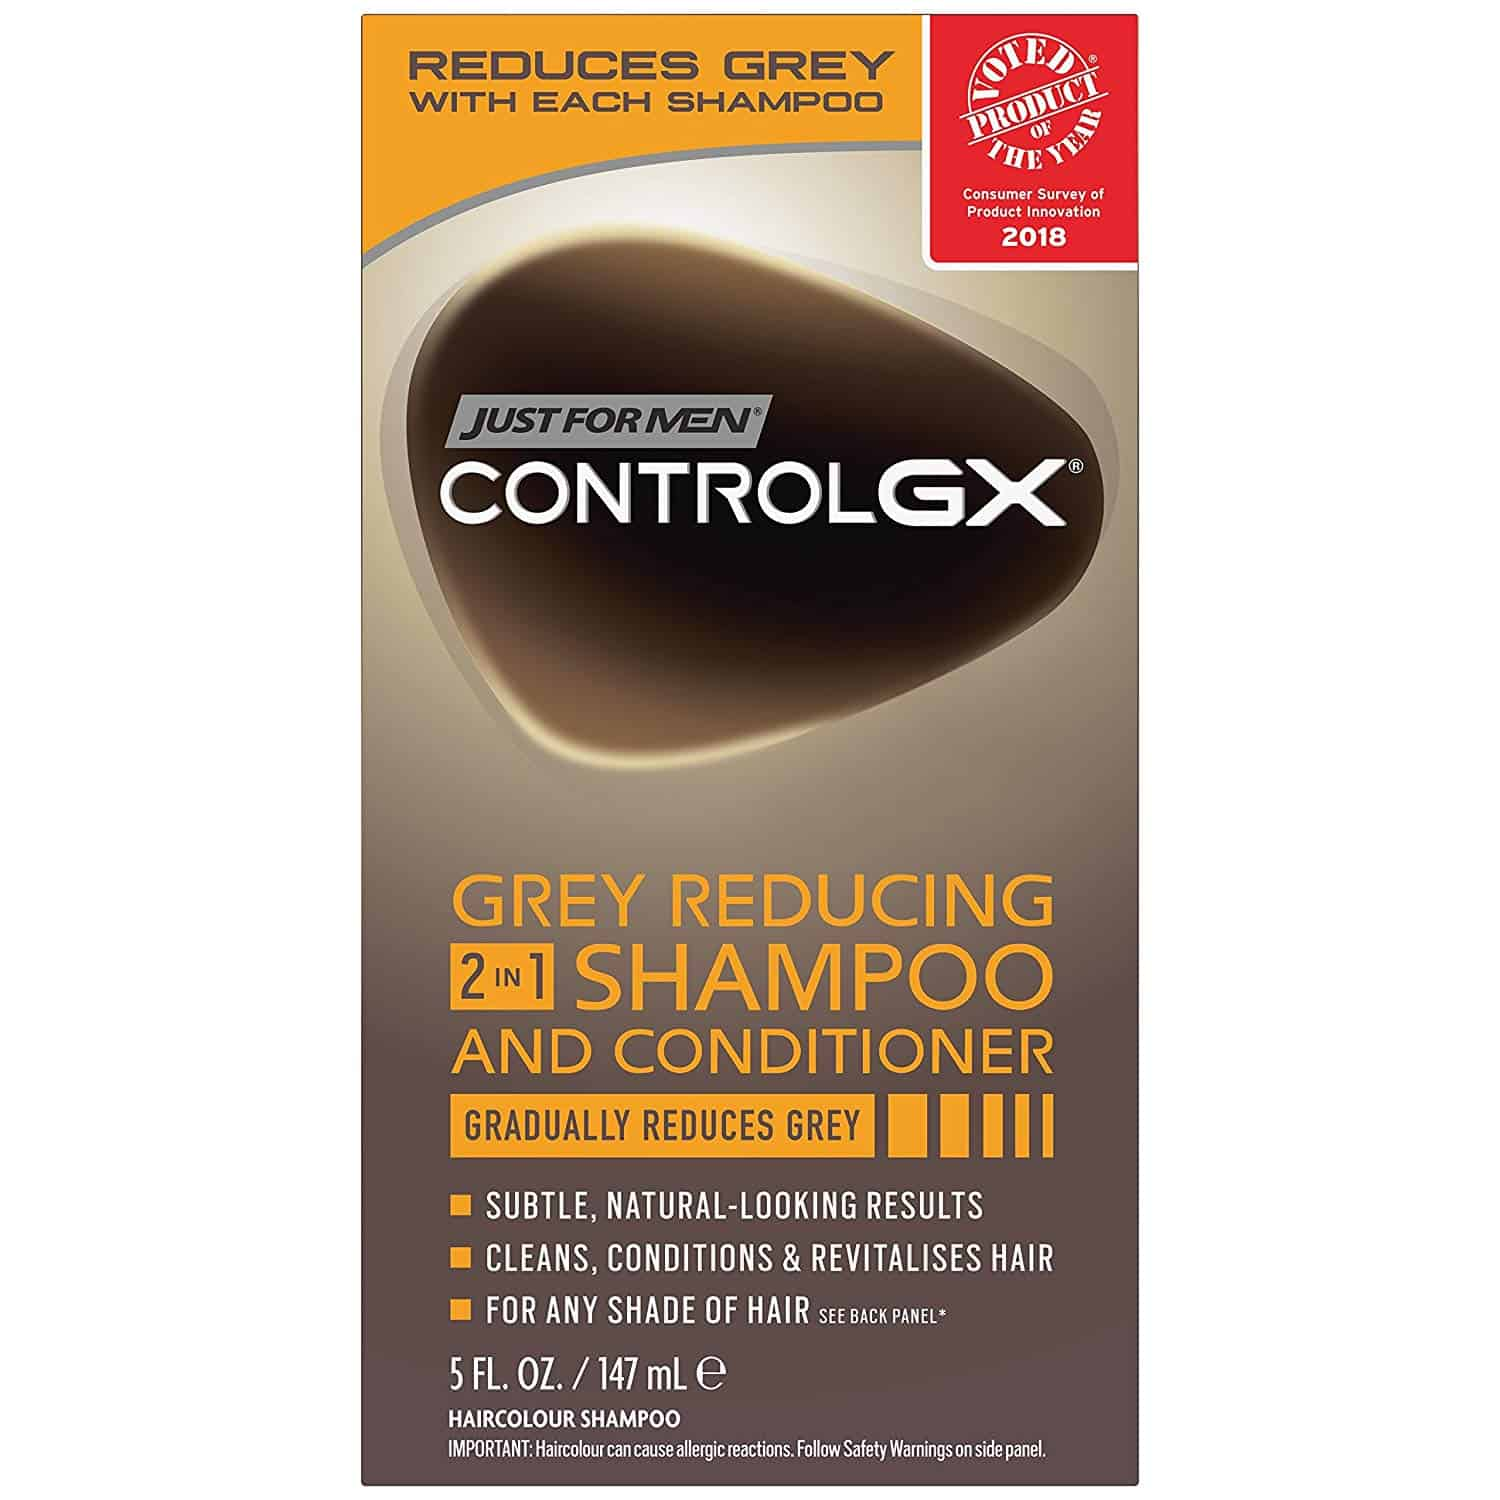 Just For Men Control GX 2 in 1 Grey Reducing Shampoo and Conditioner